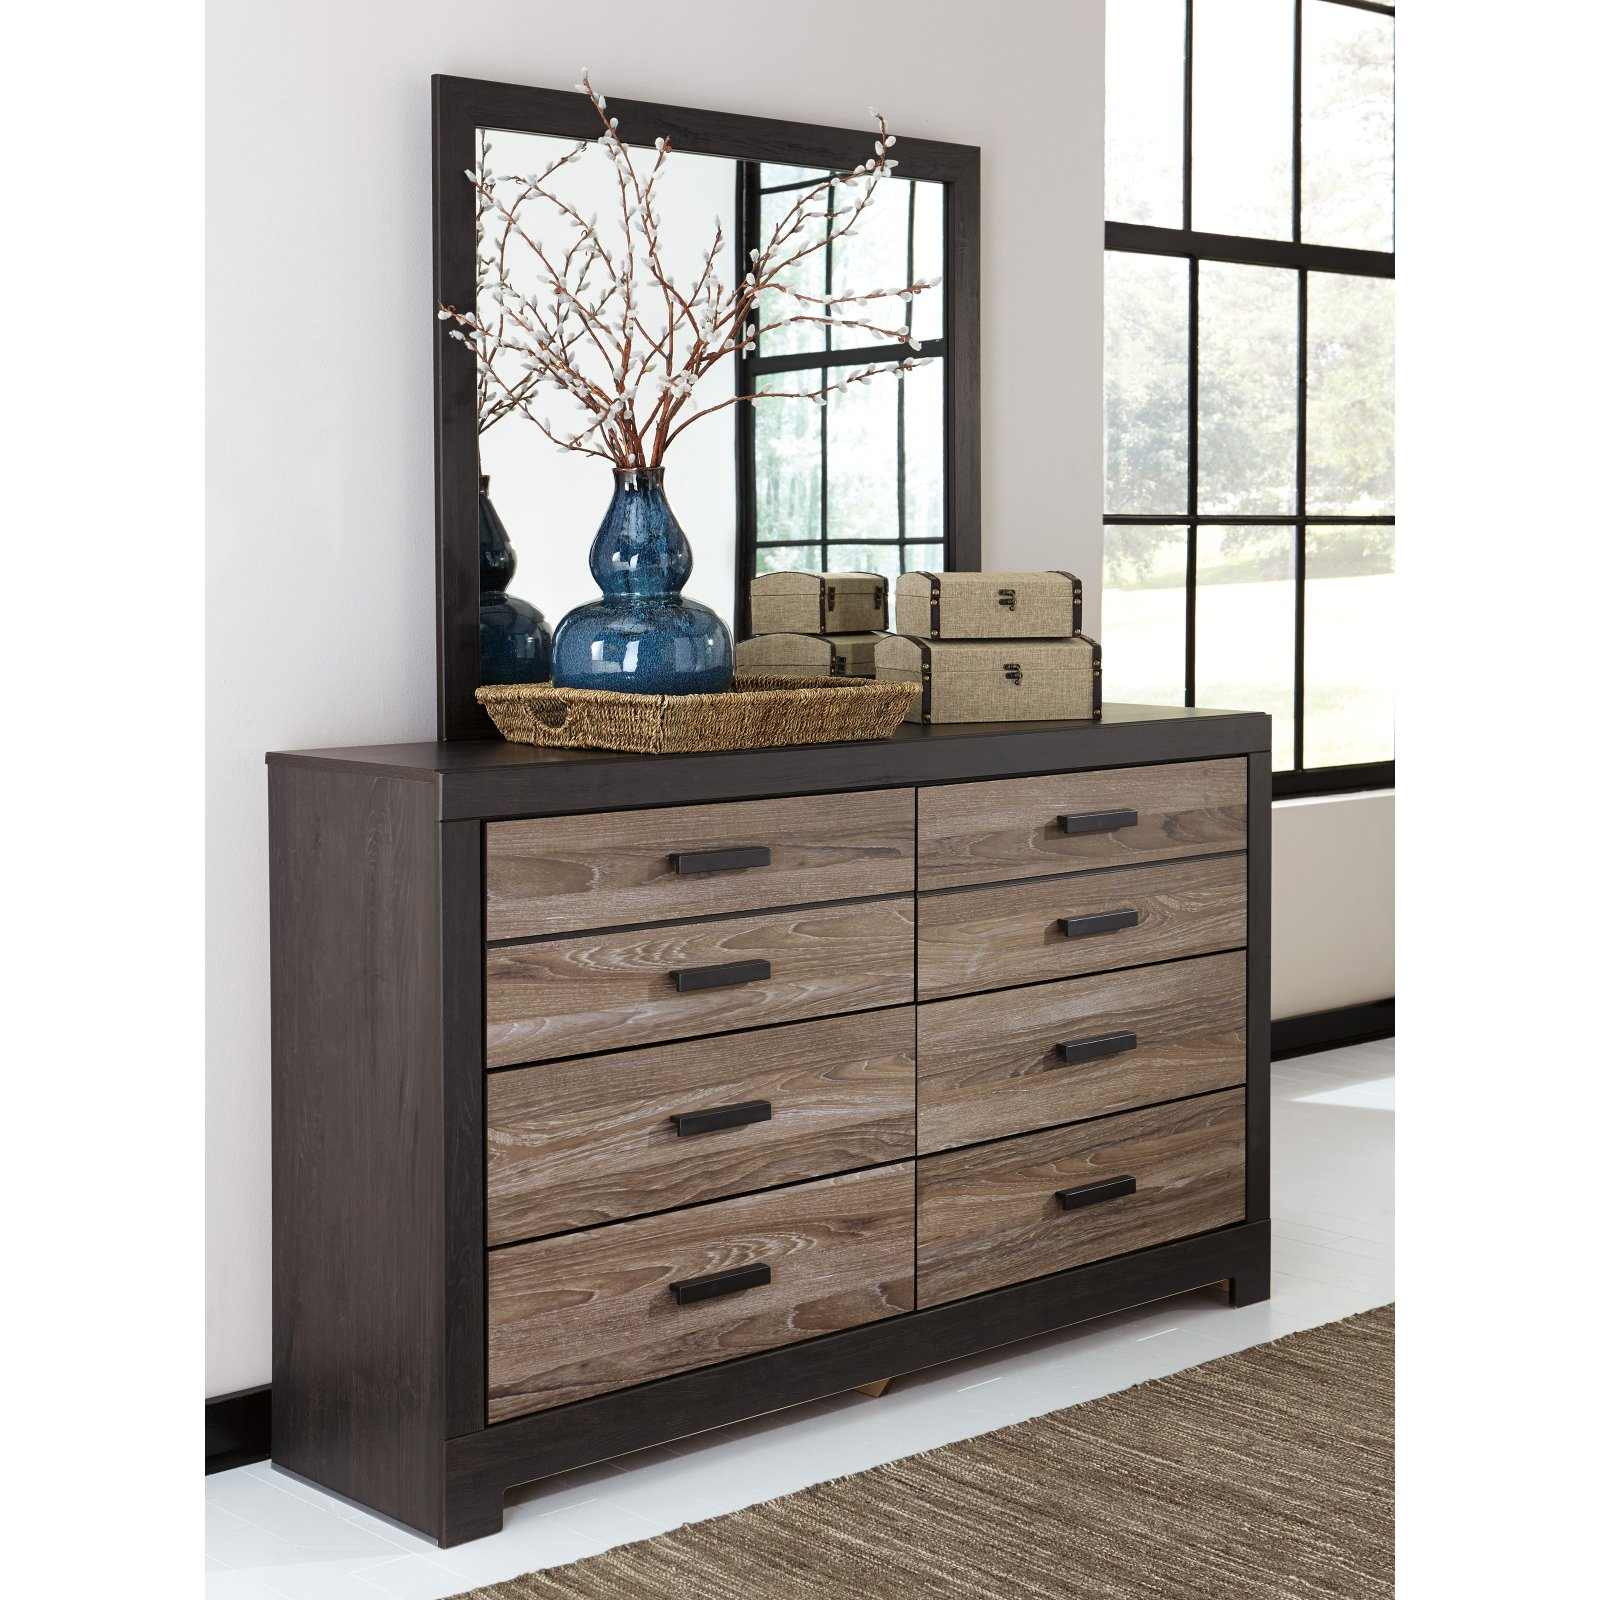 Signature Design by Ashley Harlinton 6 Drawer Dresser with Optional Mirror